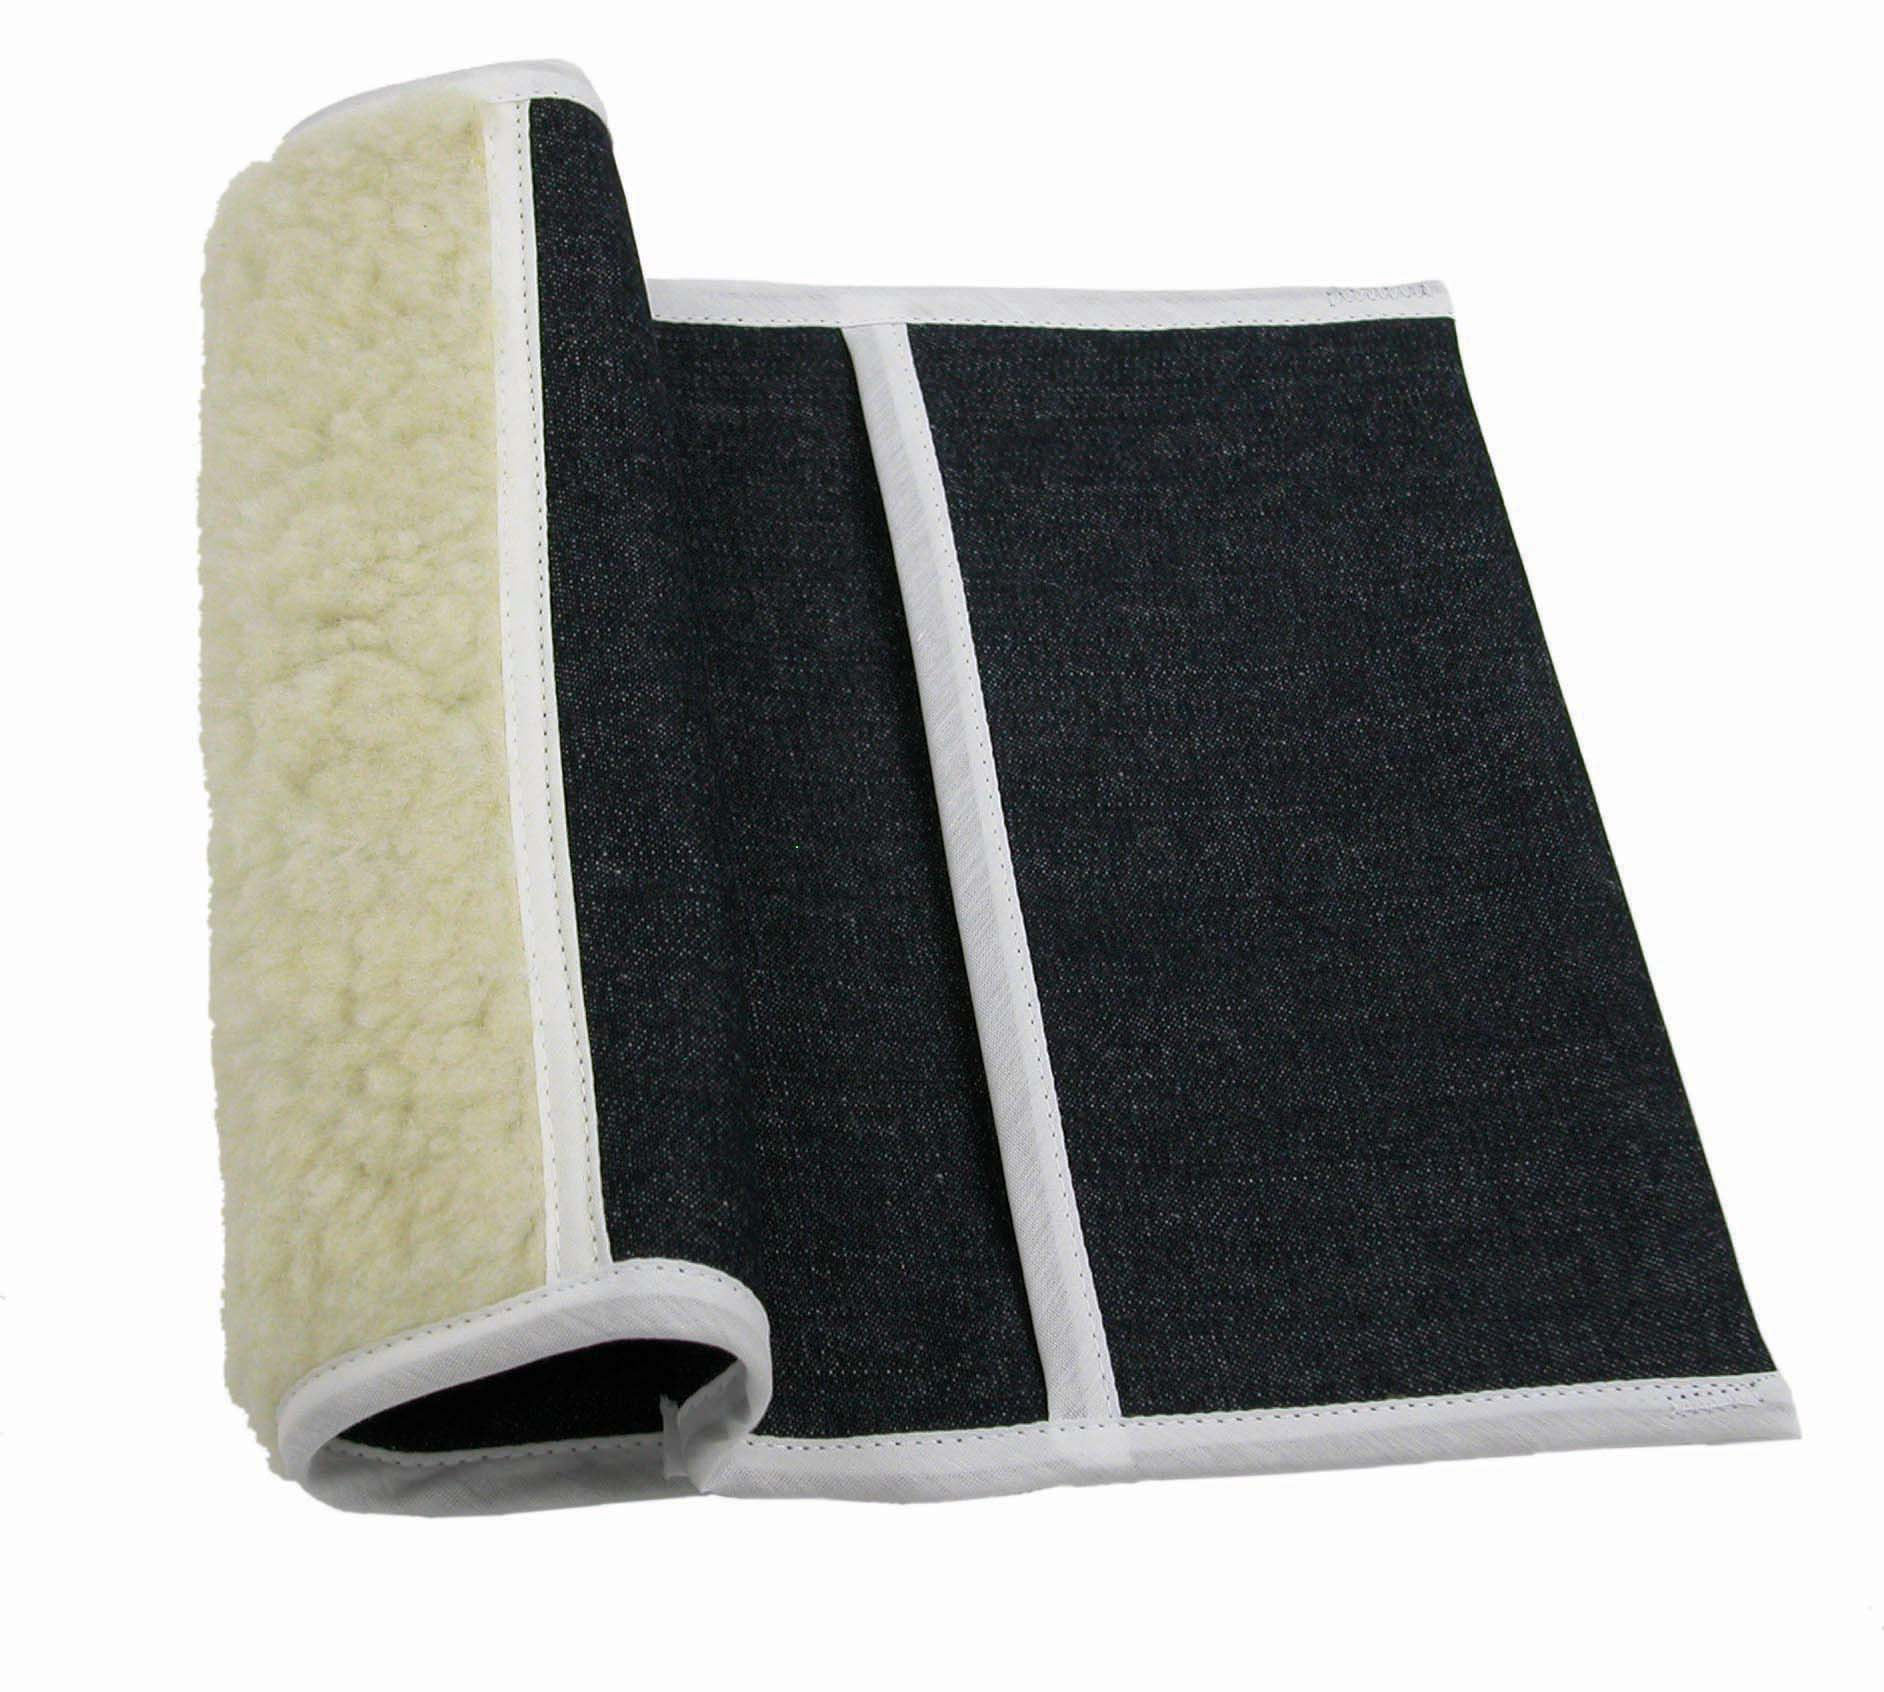 fleece-armrests-with-pouch-517-1076-9911-lr.jpg